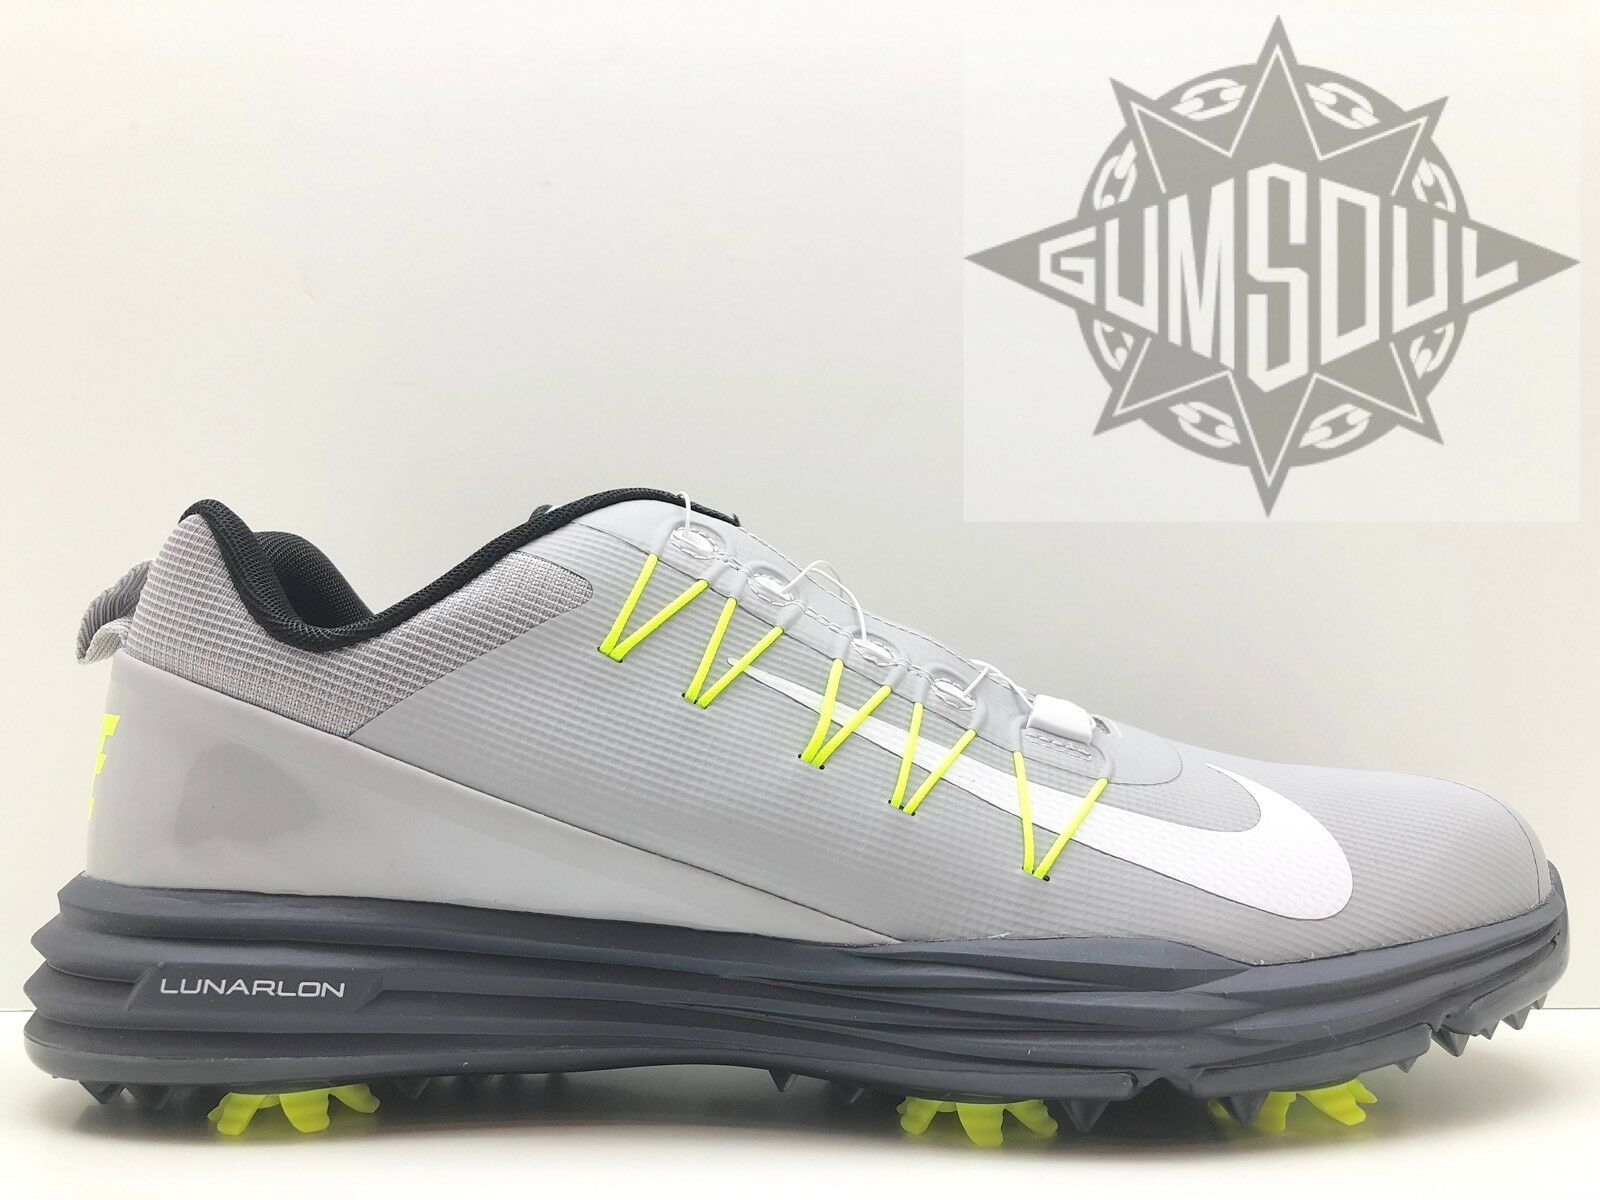 NIKE LUNAR COMMAND 2 BOA WOLF GREY WHITE VOLT GOLF SHOES 888552 005 Price reduction Special limited time